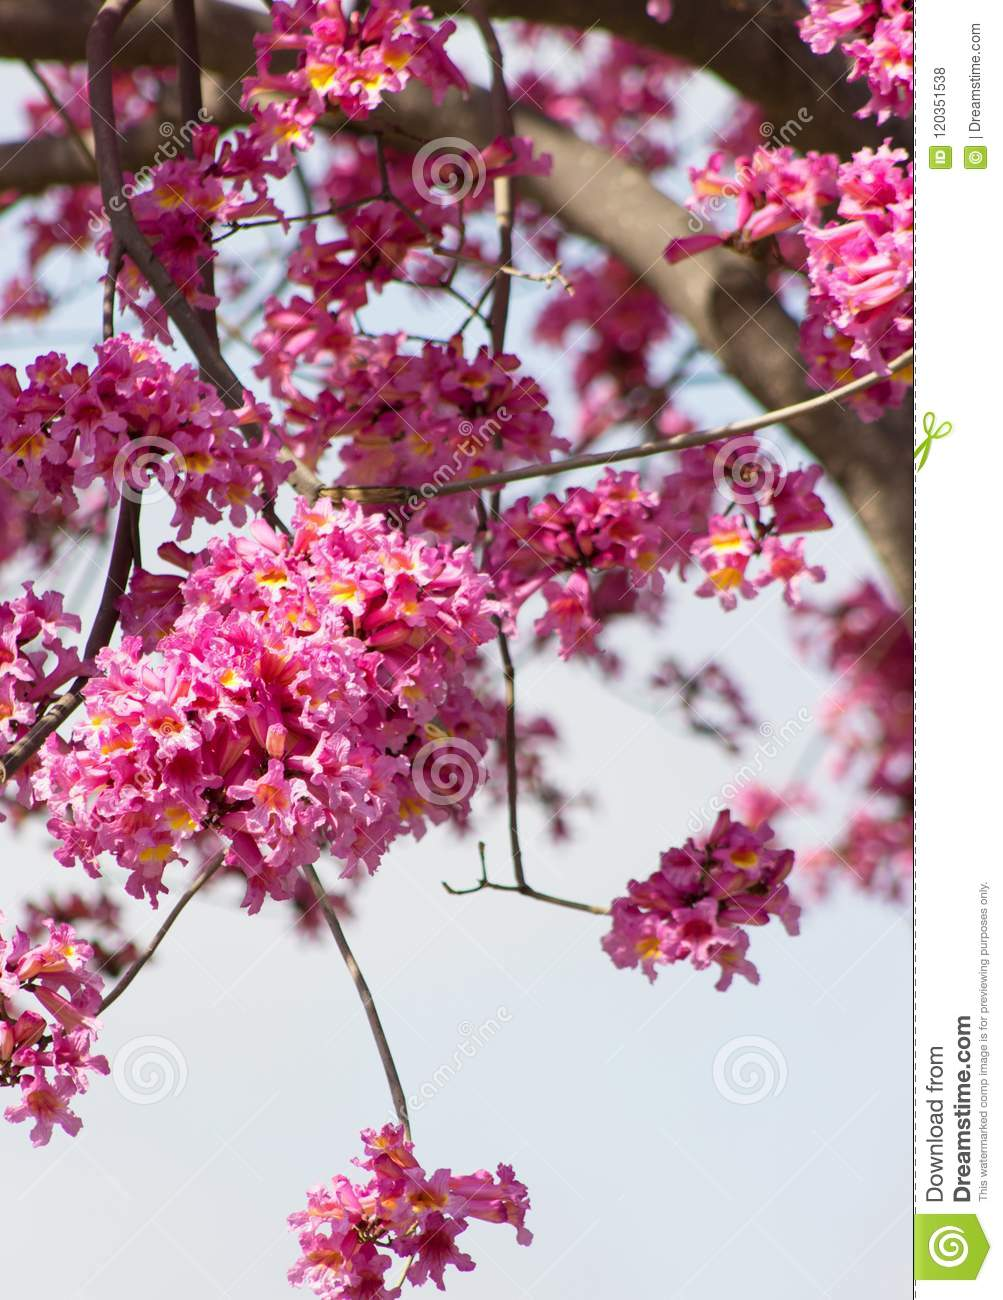 Pink Tabebuia Tree Branches Filled With Frilly Bell Shaped Trumpet